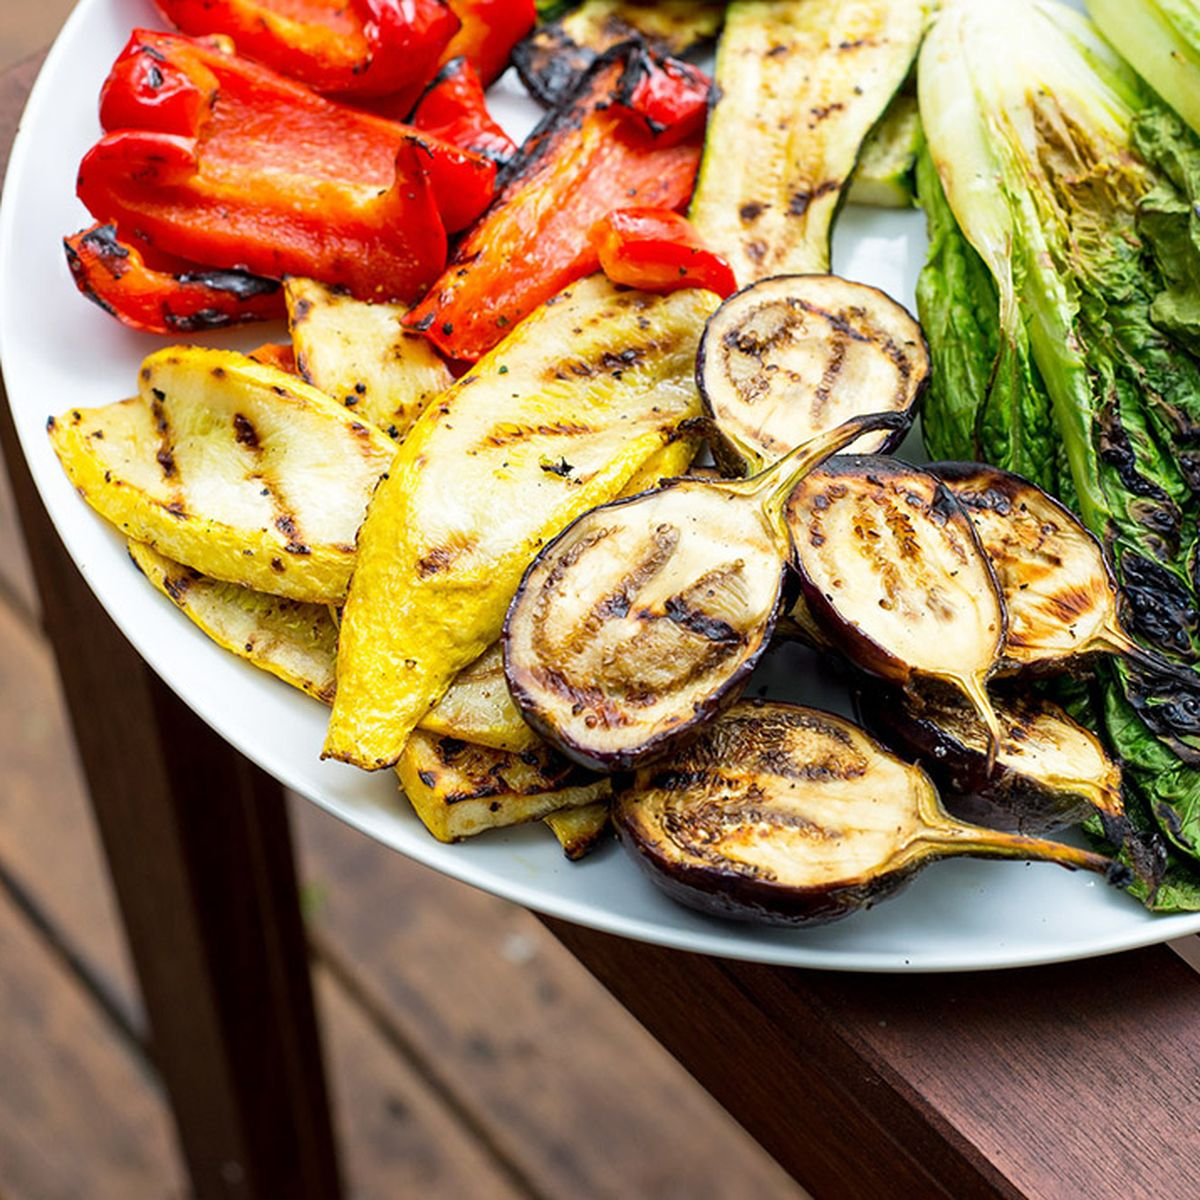 Grilled Veggie Platter With Red Pepper Hummus Sauce Recipe On Food52